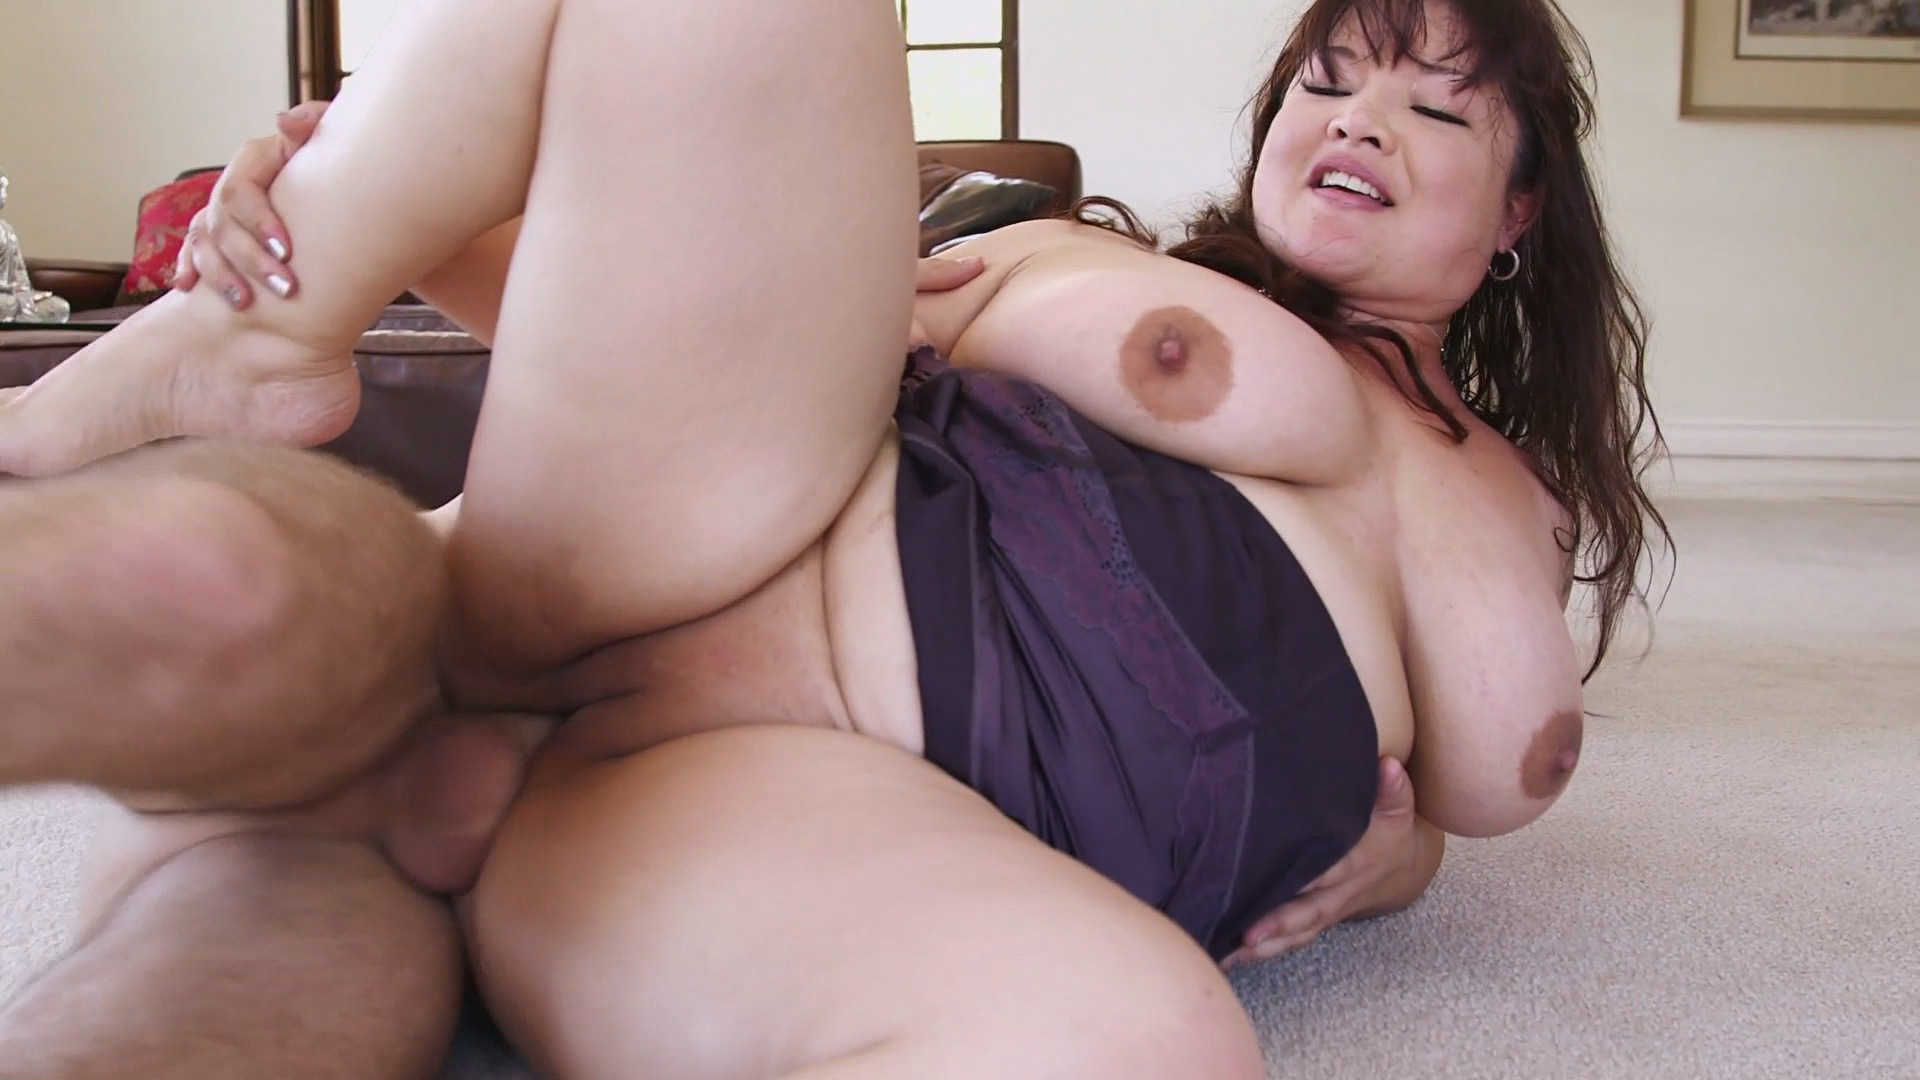 Meet Kelly Xvideos